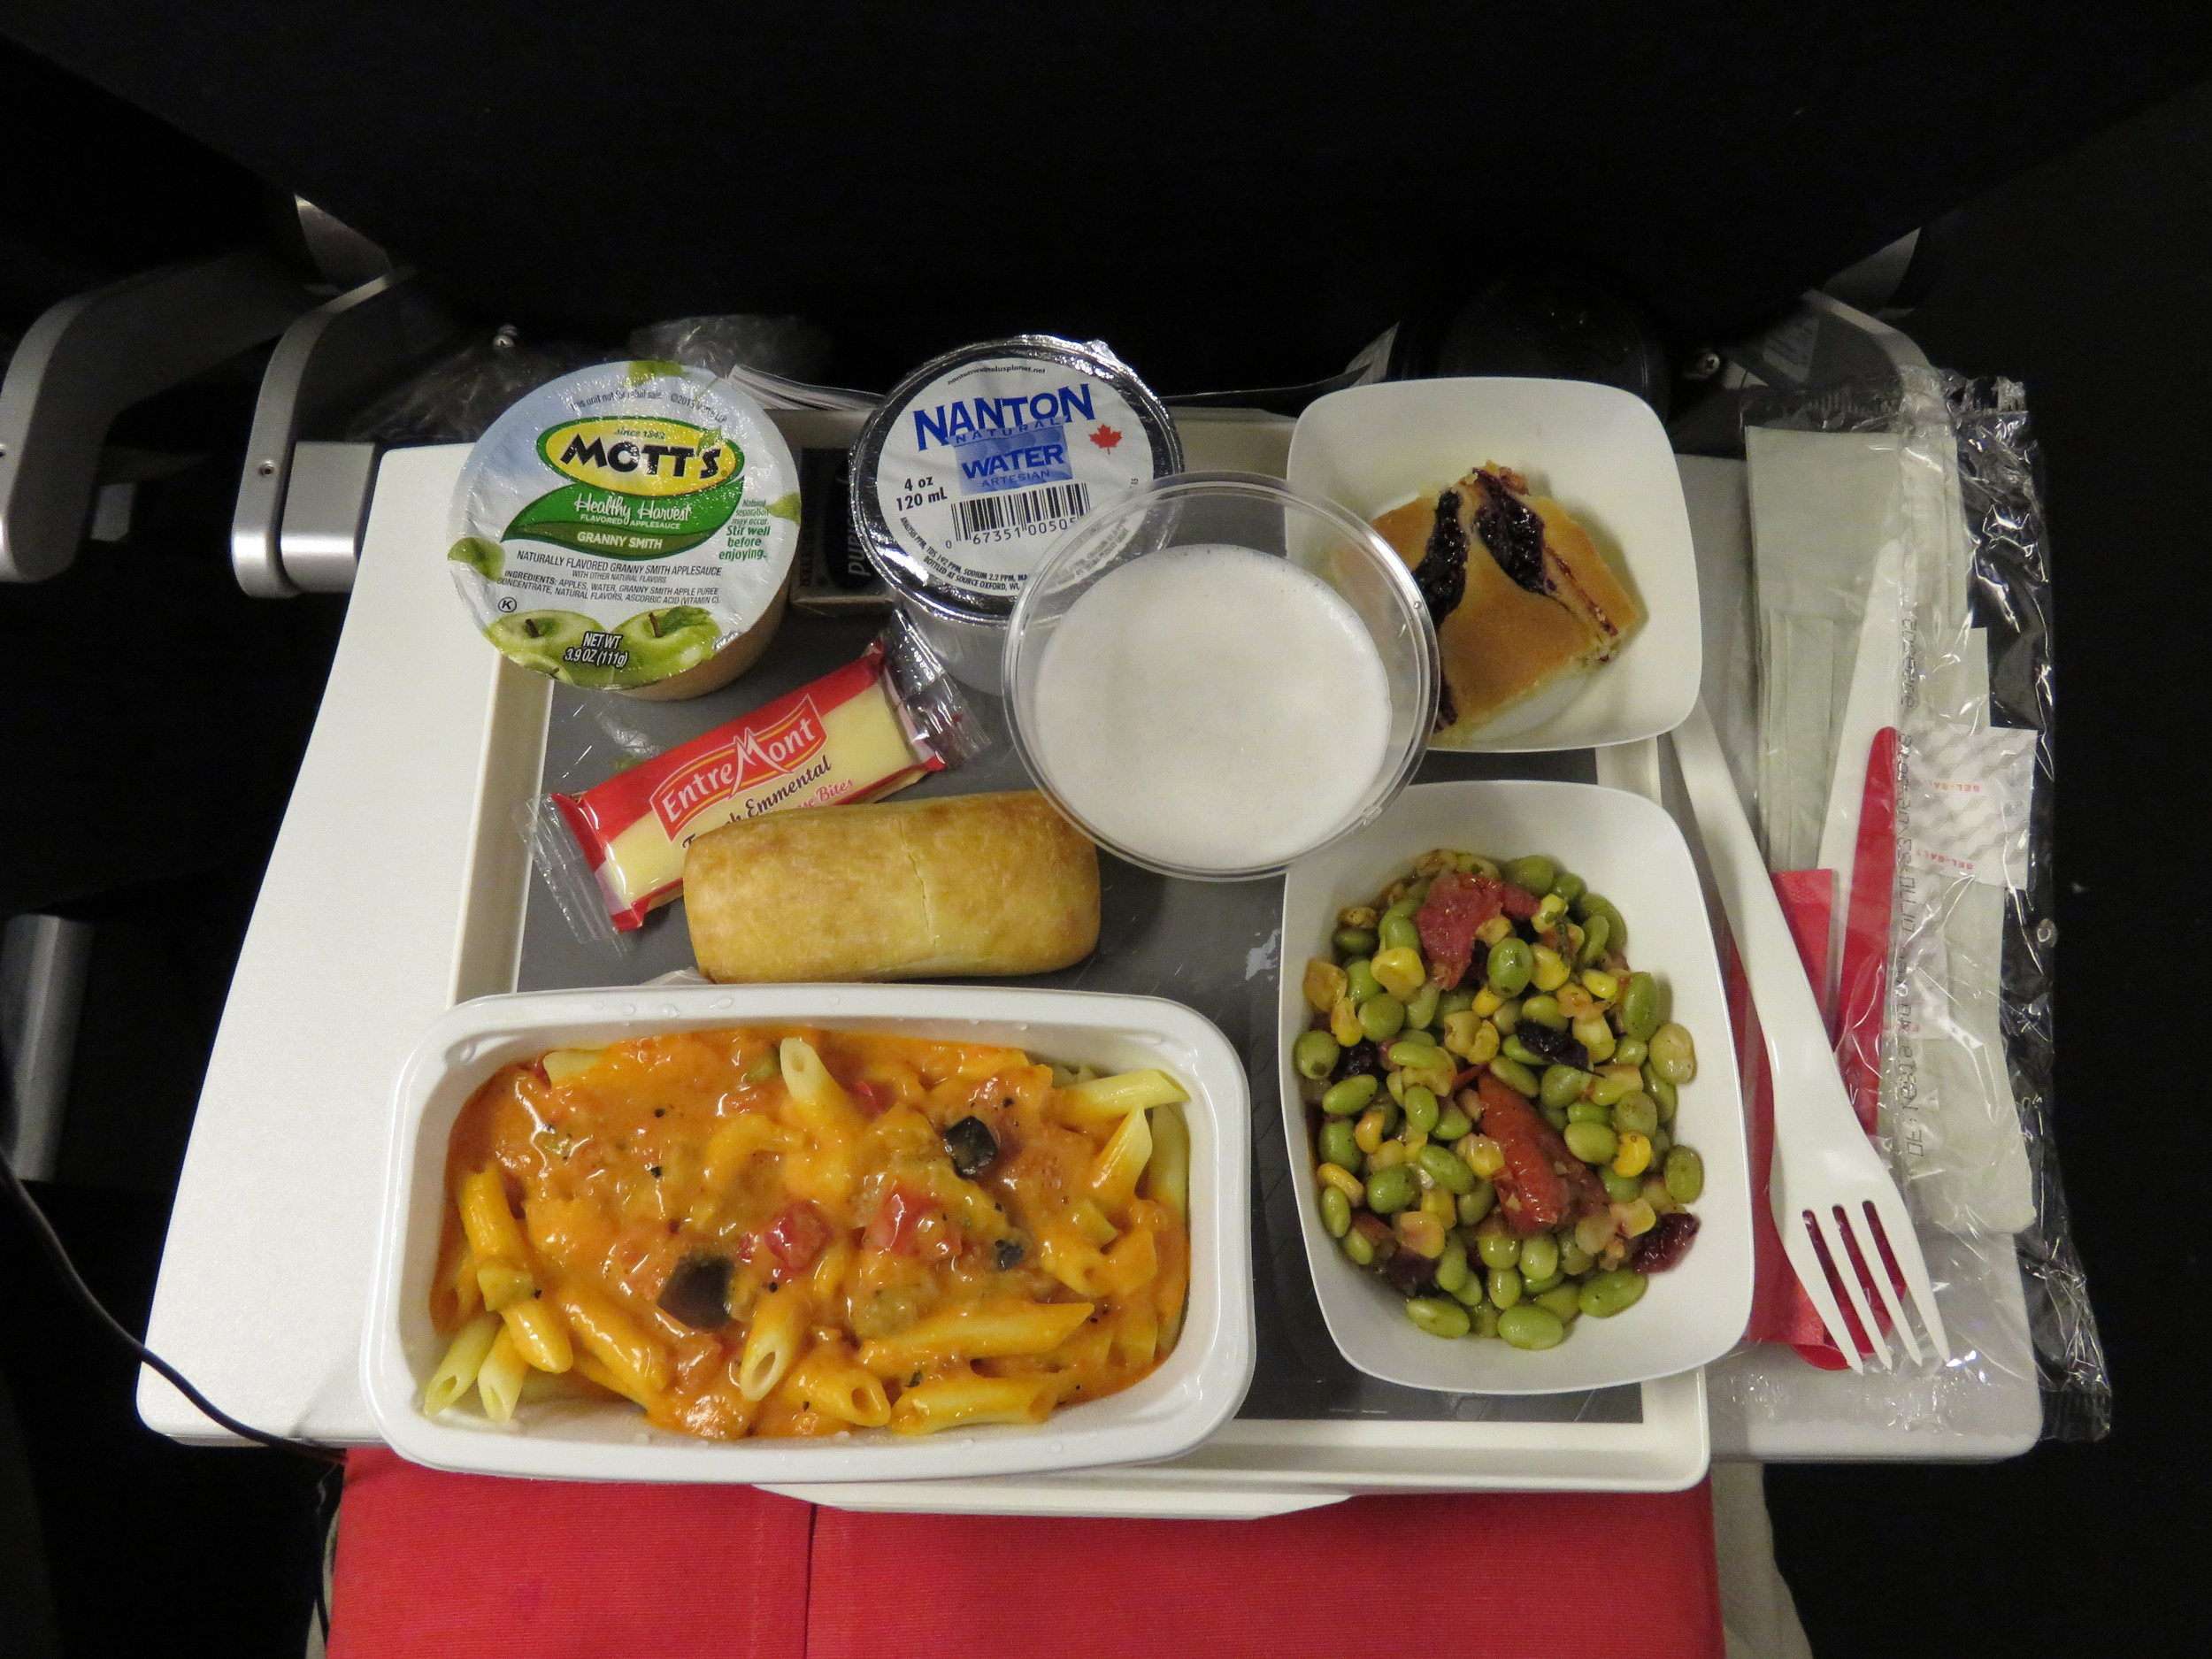 Air France's pennine pasta with rosee sauce